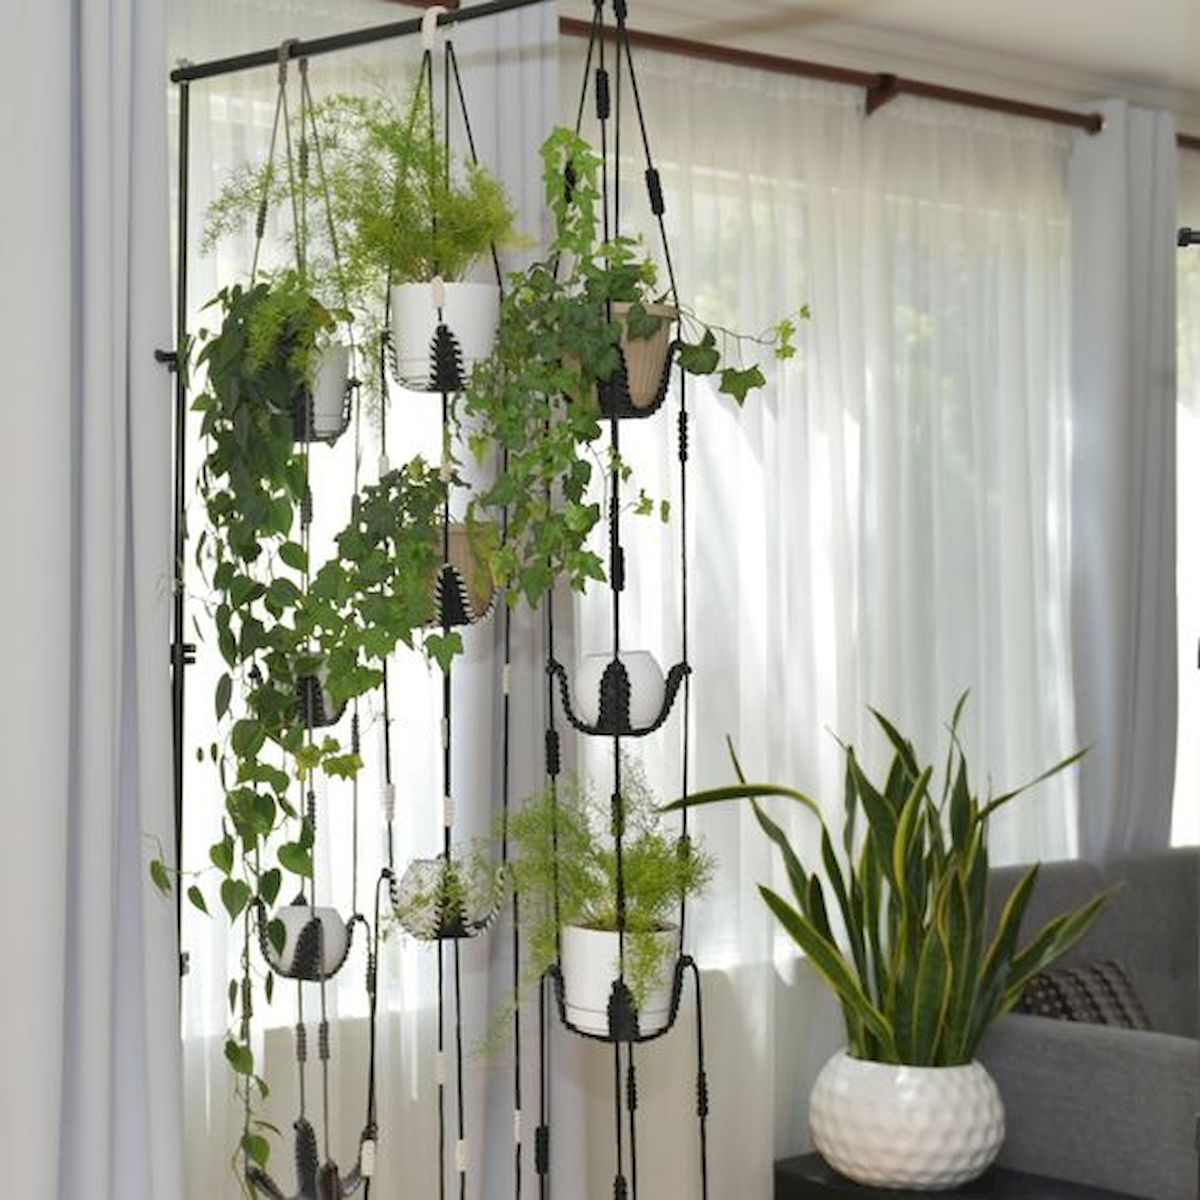 70 Awesome Small Garden Ideas for Apartment (64)